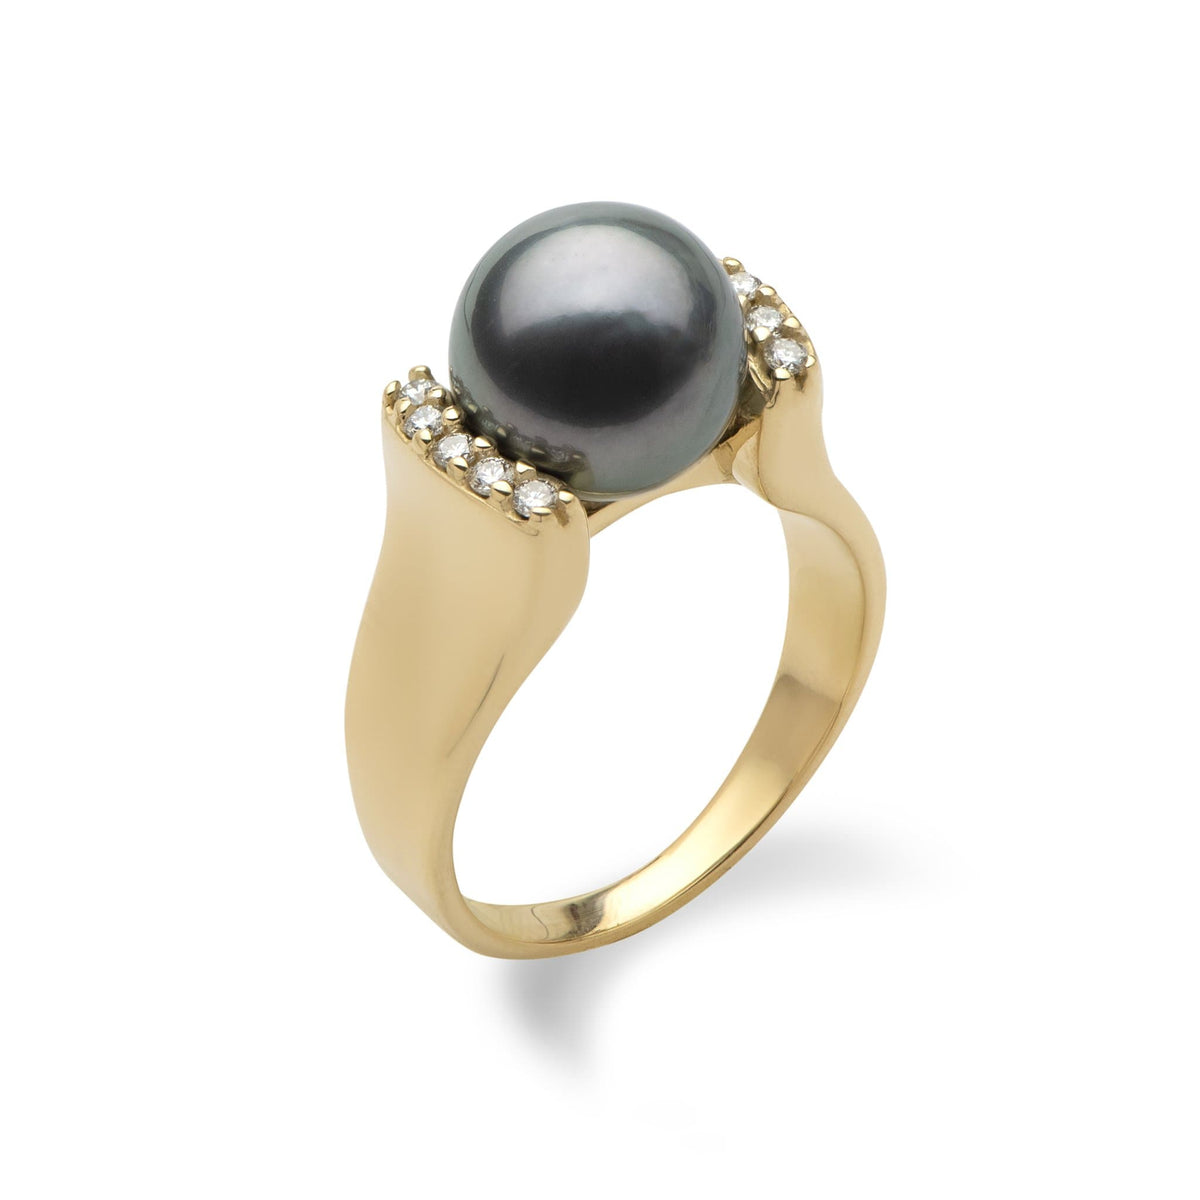 Tahitian Black Pearl Ring in 14K Yellow Gold with Diamonds